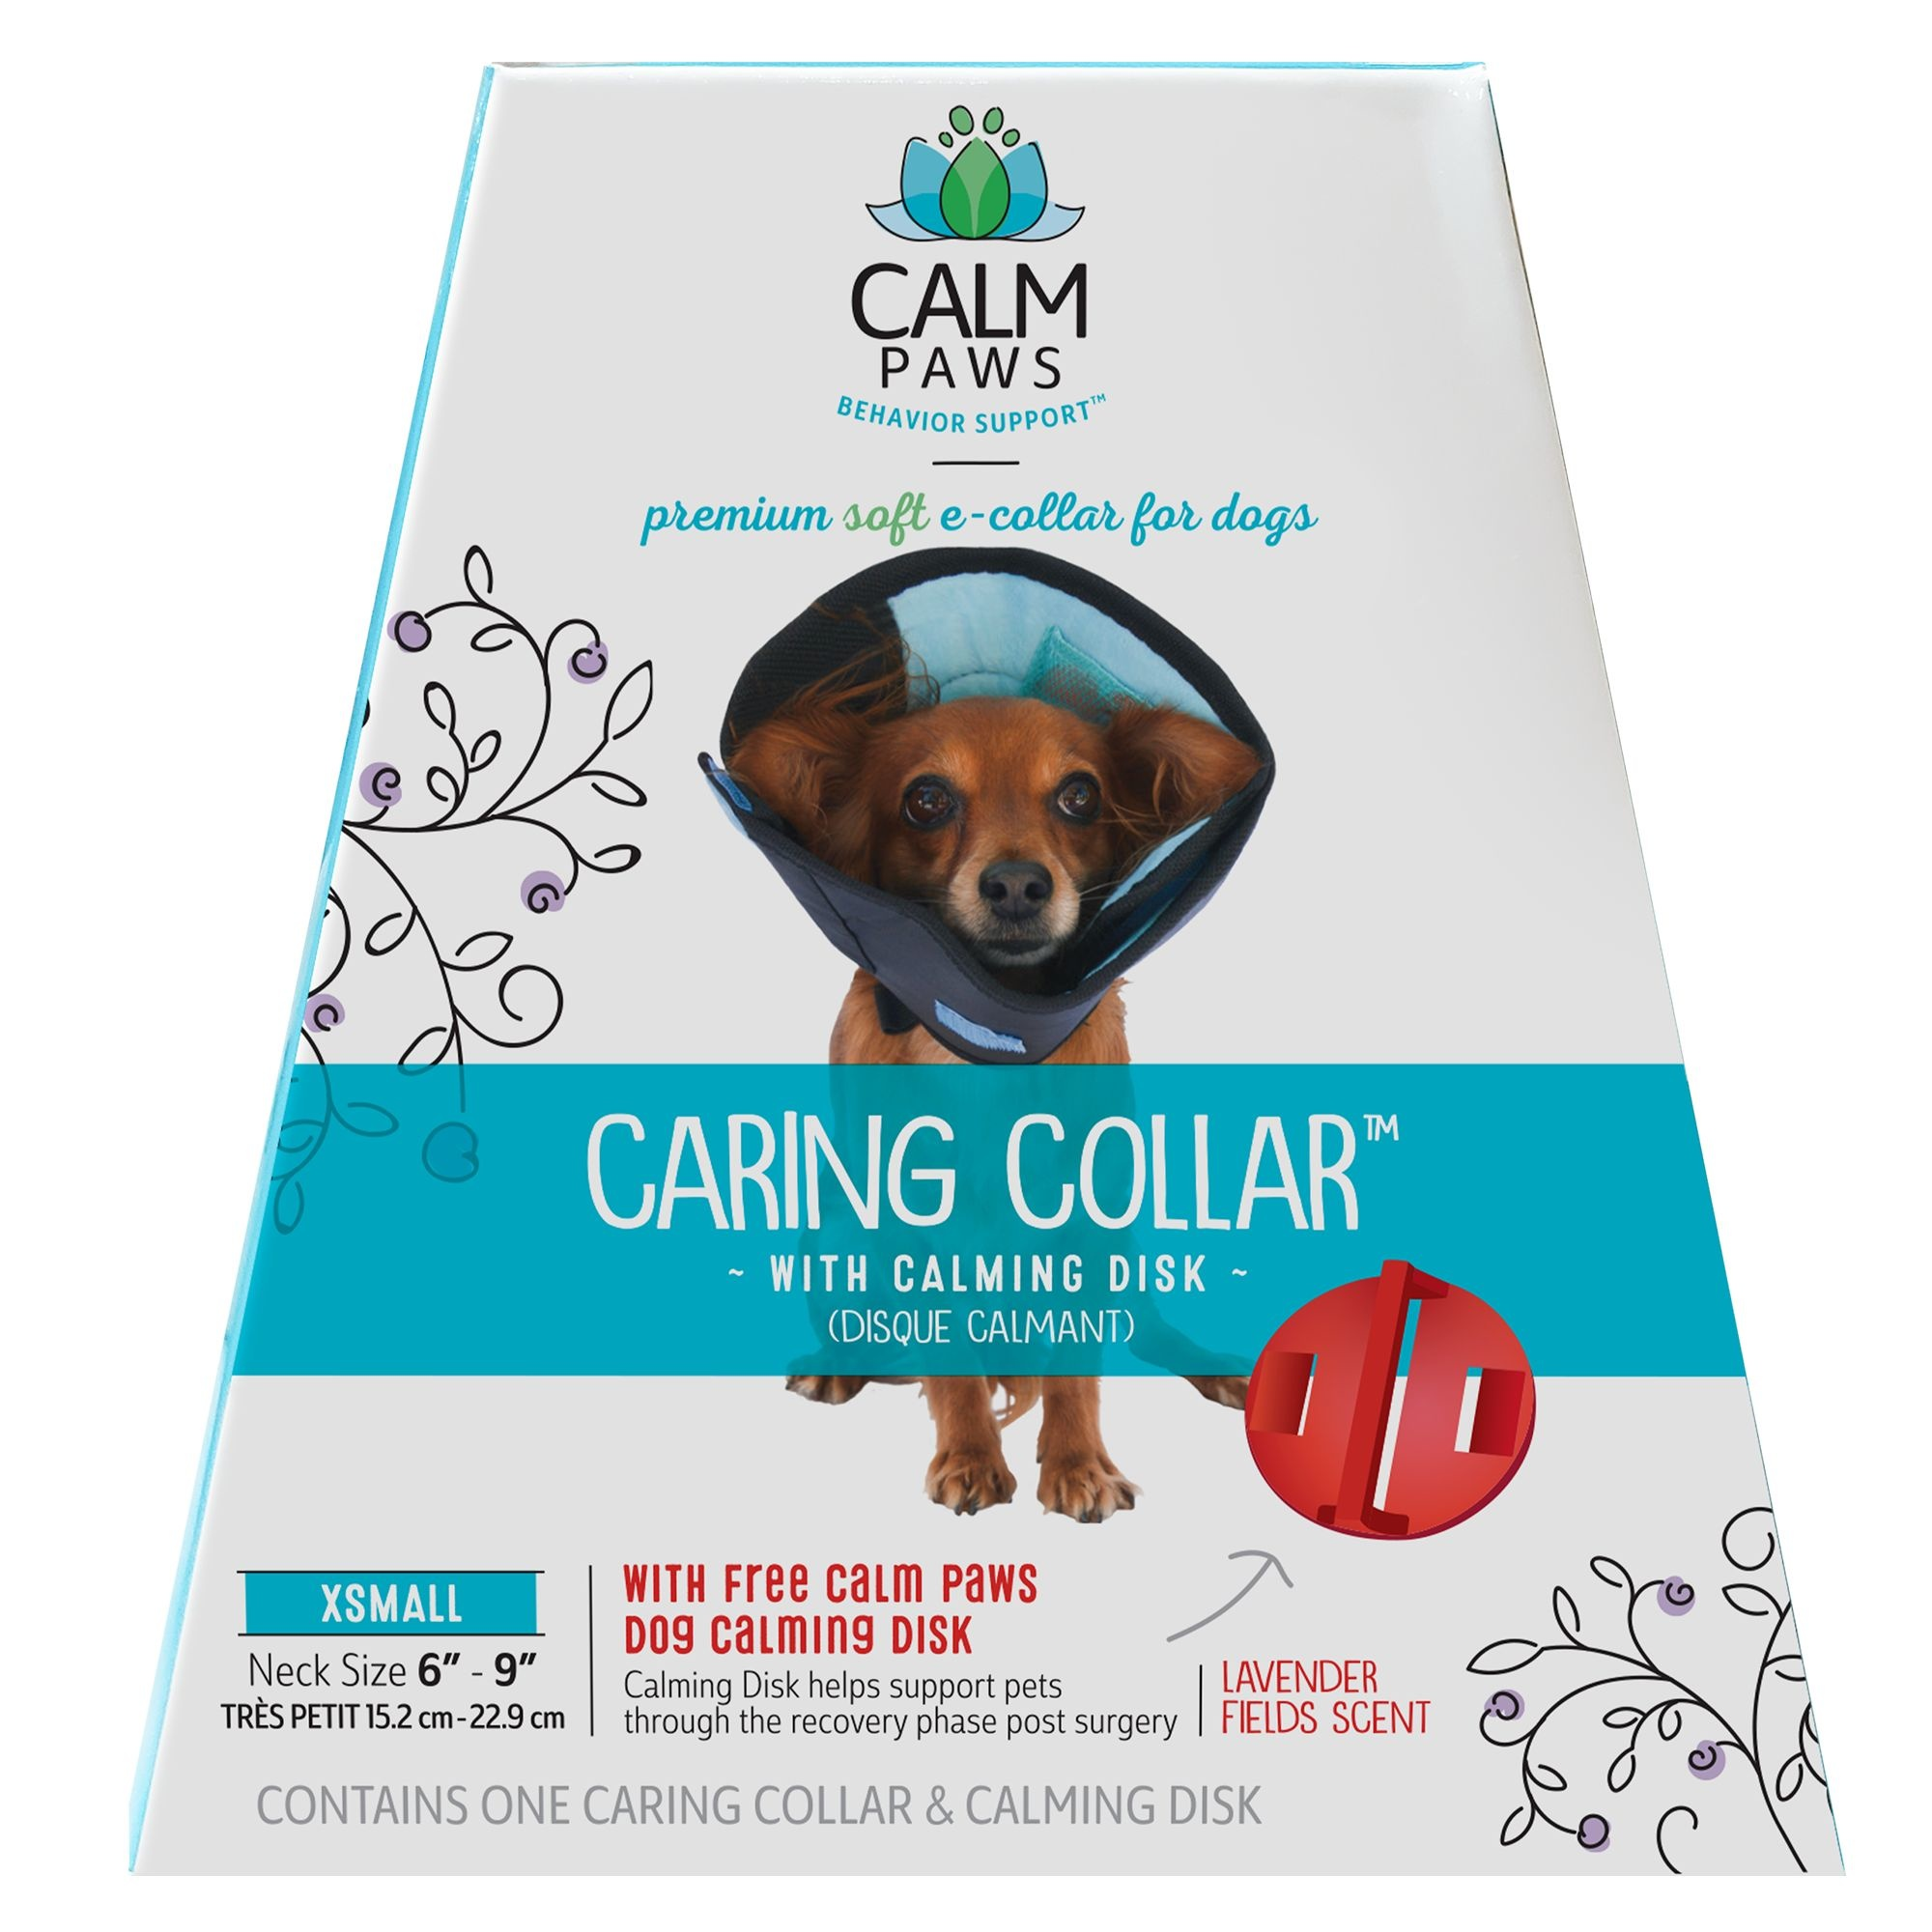 21st Centry Animal Health Care Calm Paws Caring Collar with Calming Gel Patch